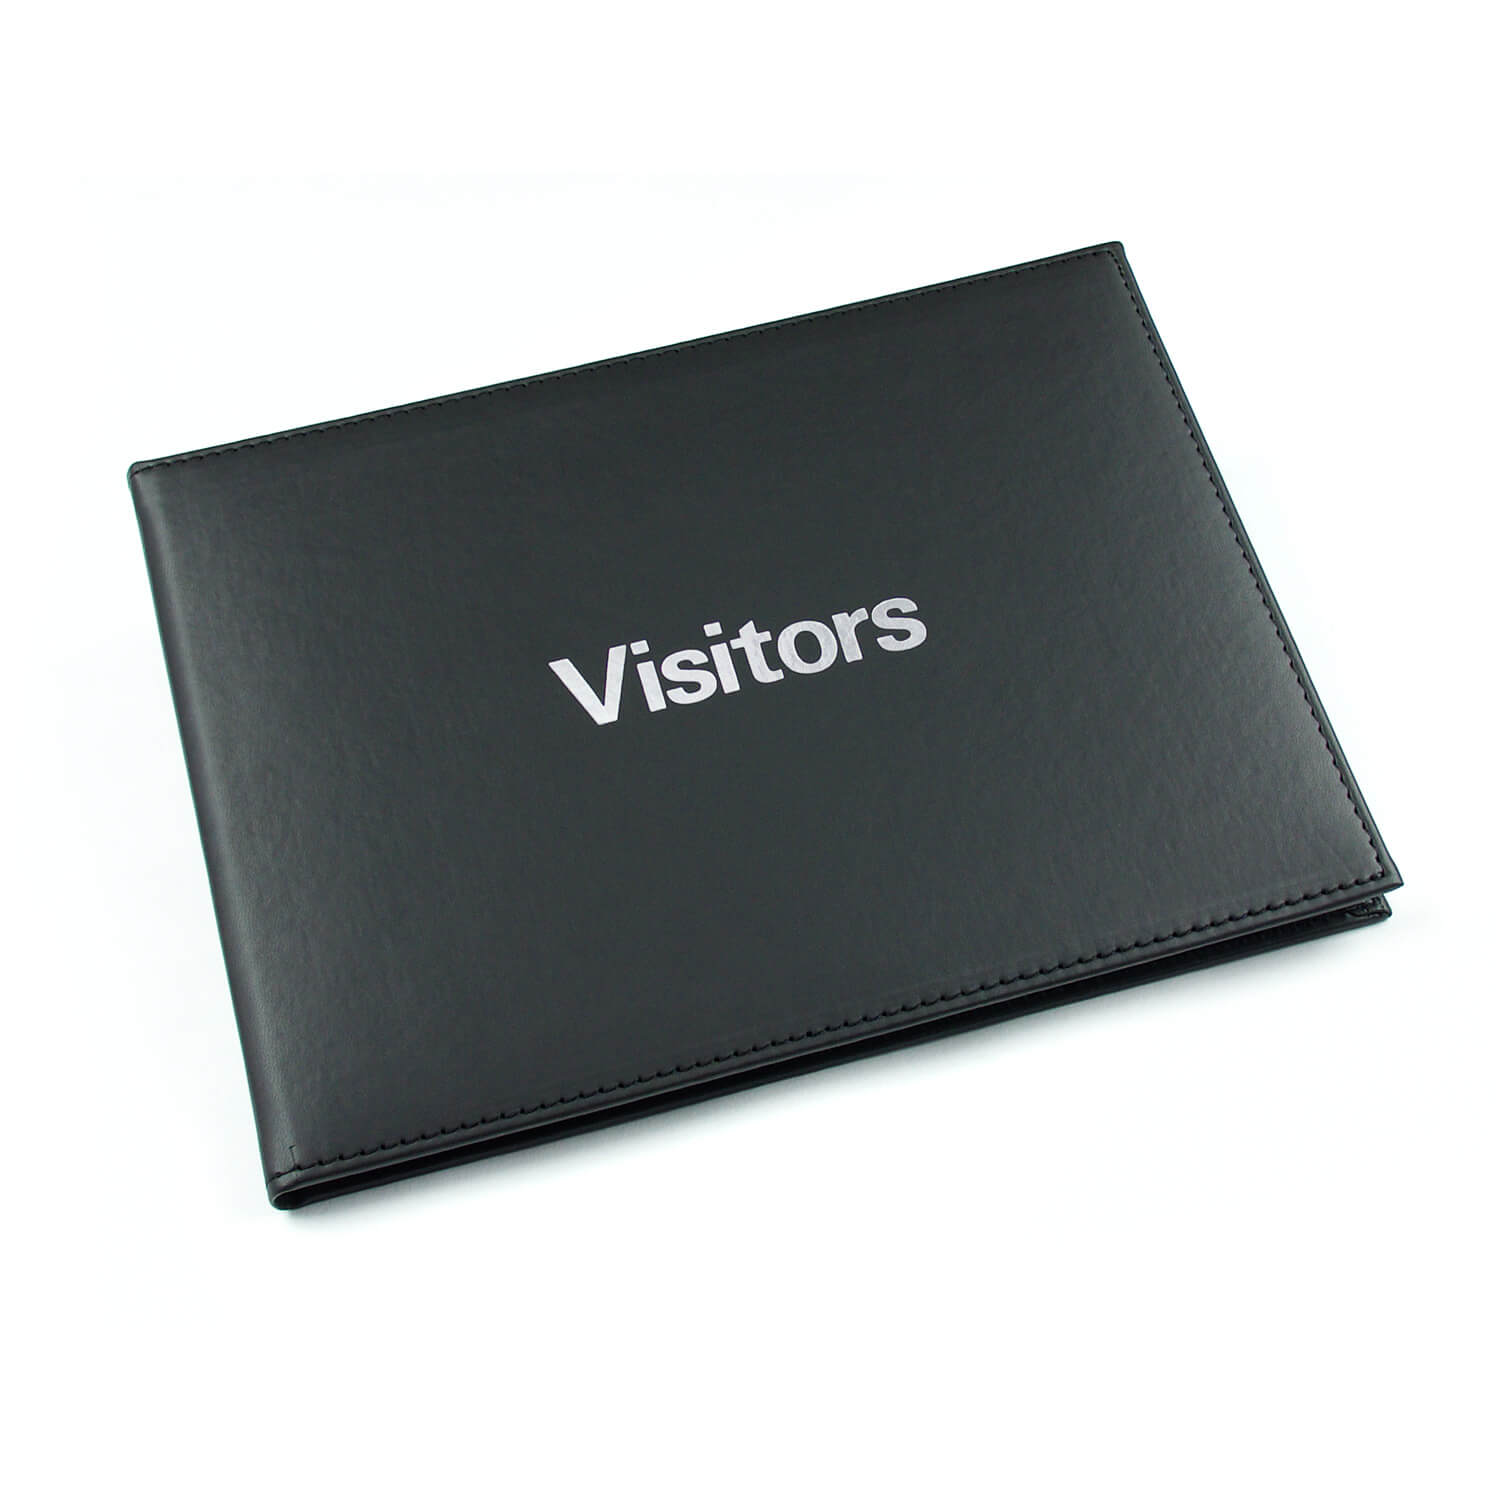 Esposti Visitors & Guest Book – Leather Feel - 600 entries - Black - (Size 26.5cm x 19.5cm)